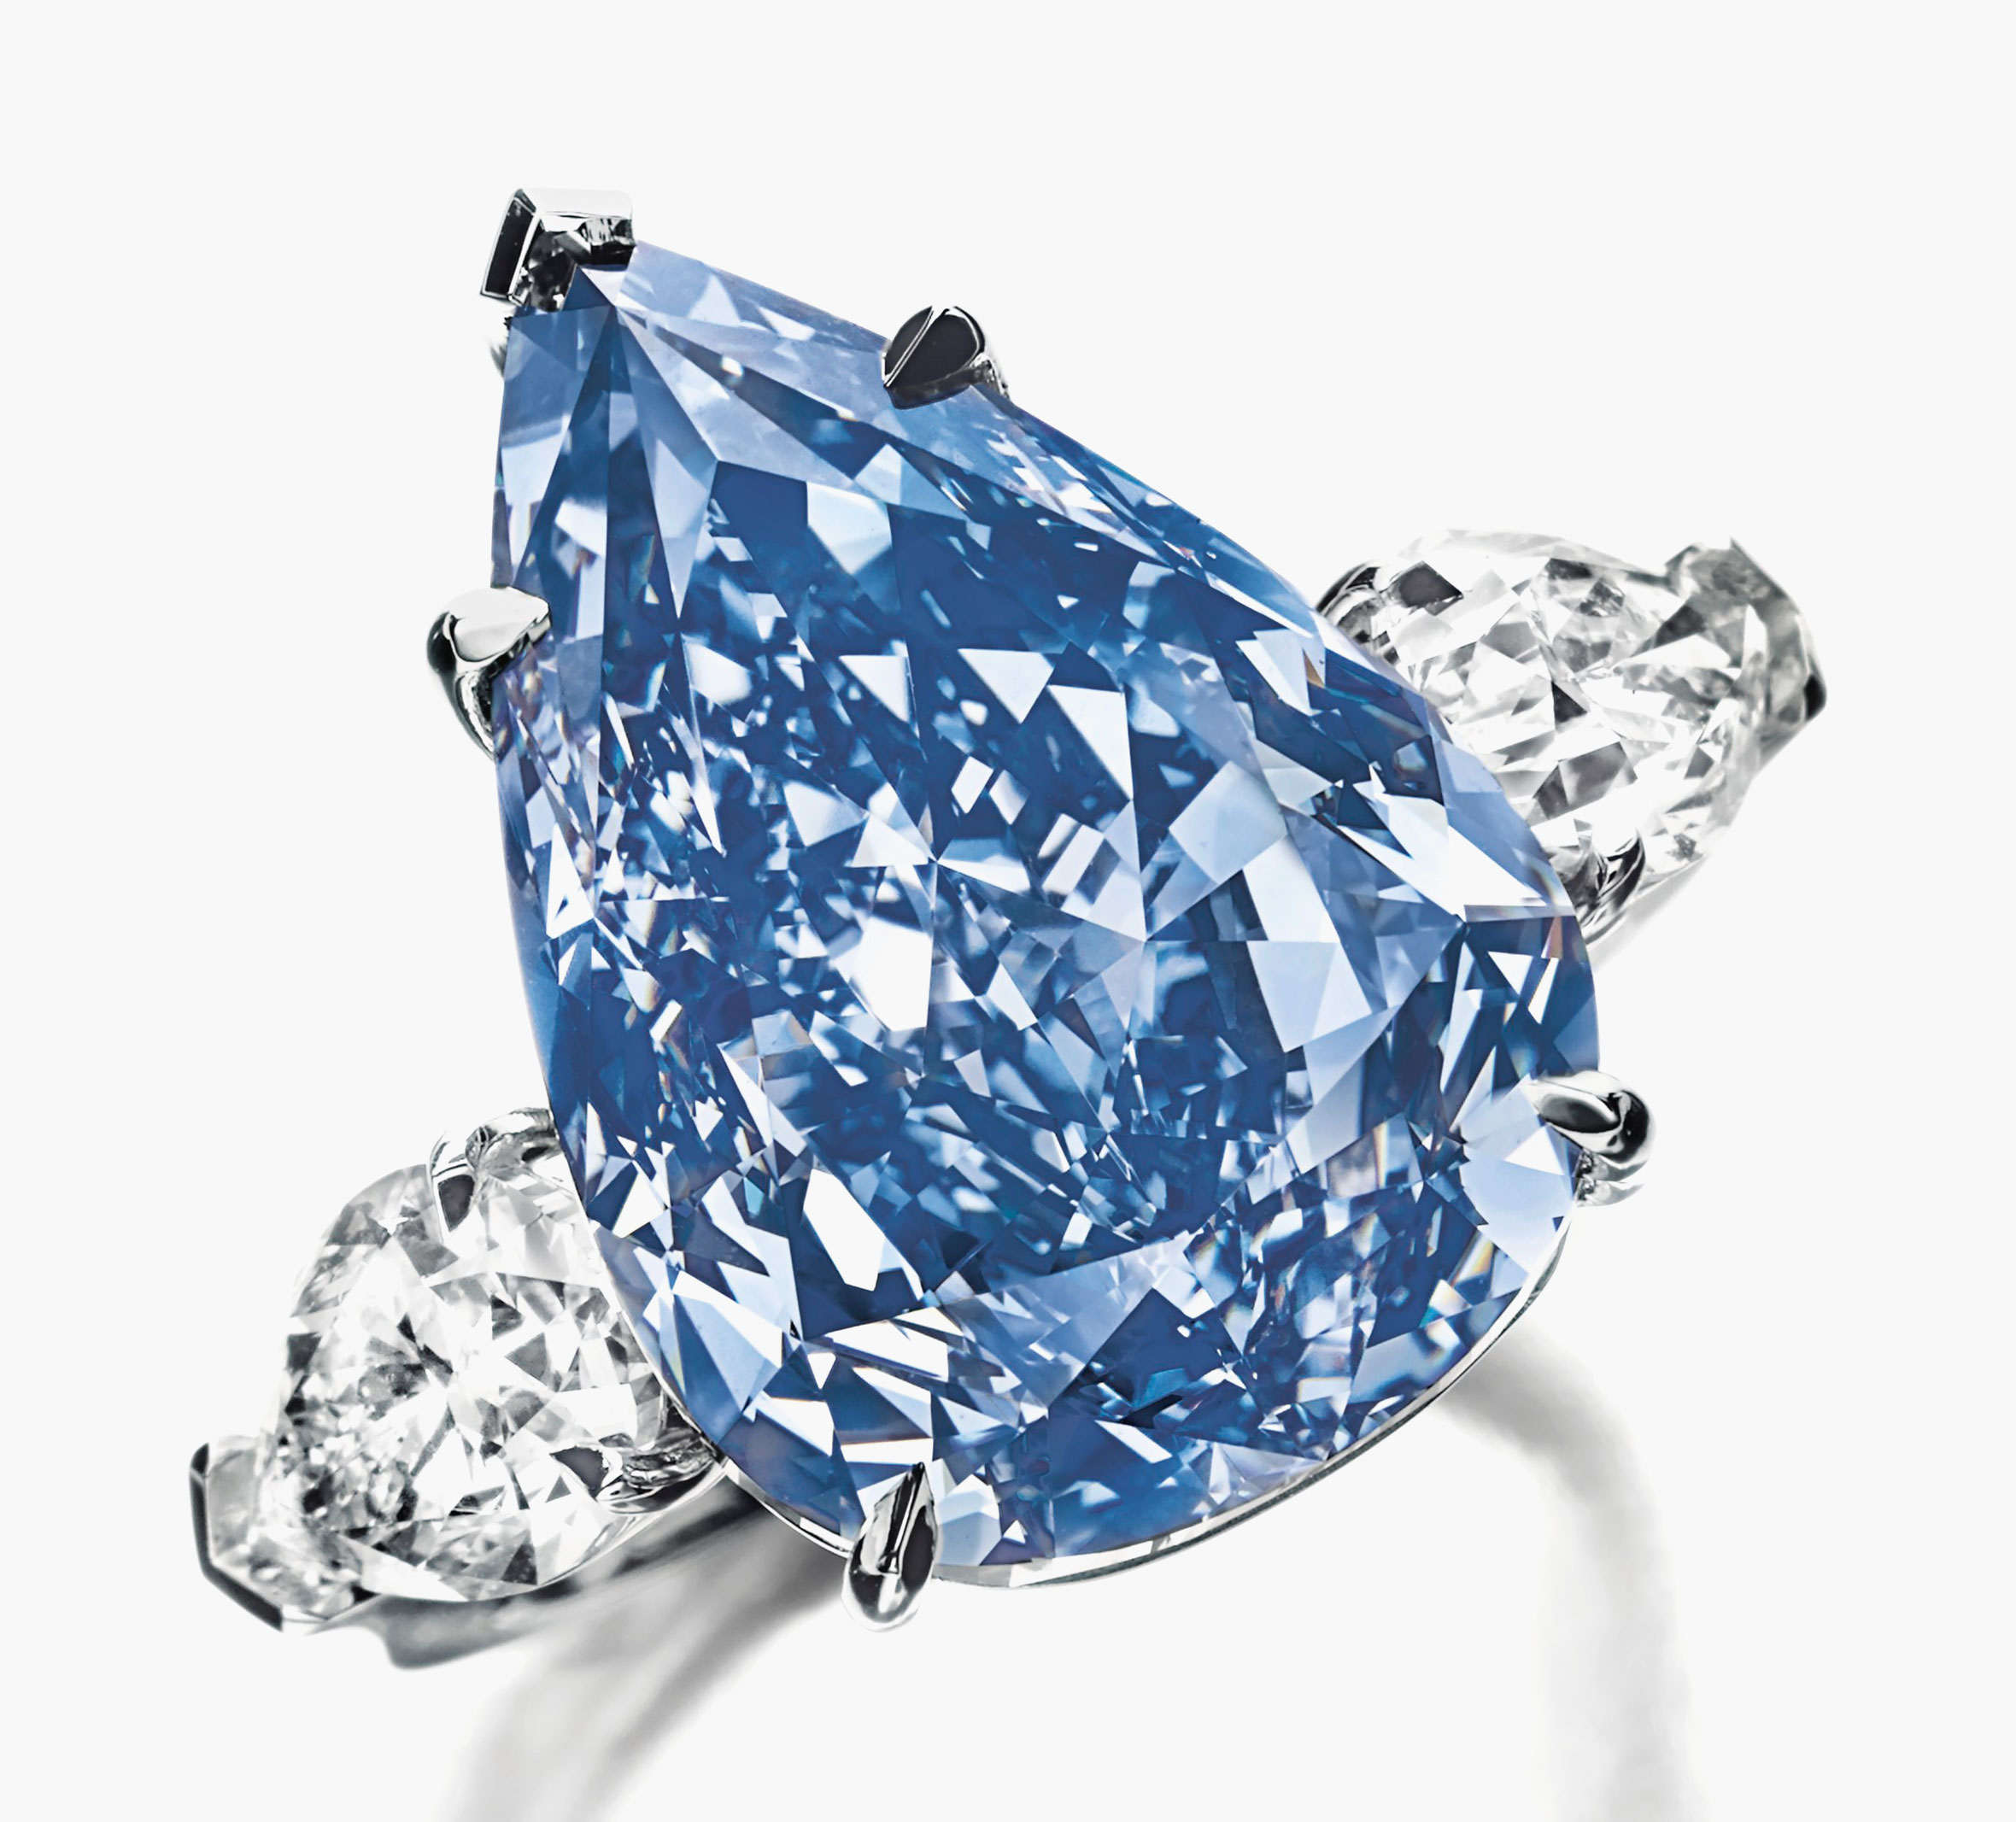 Brilliant The Worlds Most Sought After Pear Shaped Diamonds Christies Short Hairstyles For Black Women Fulllsitofus